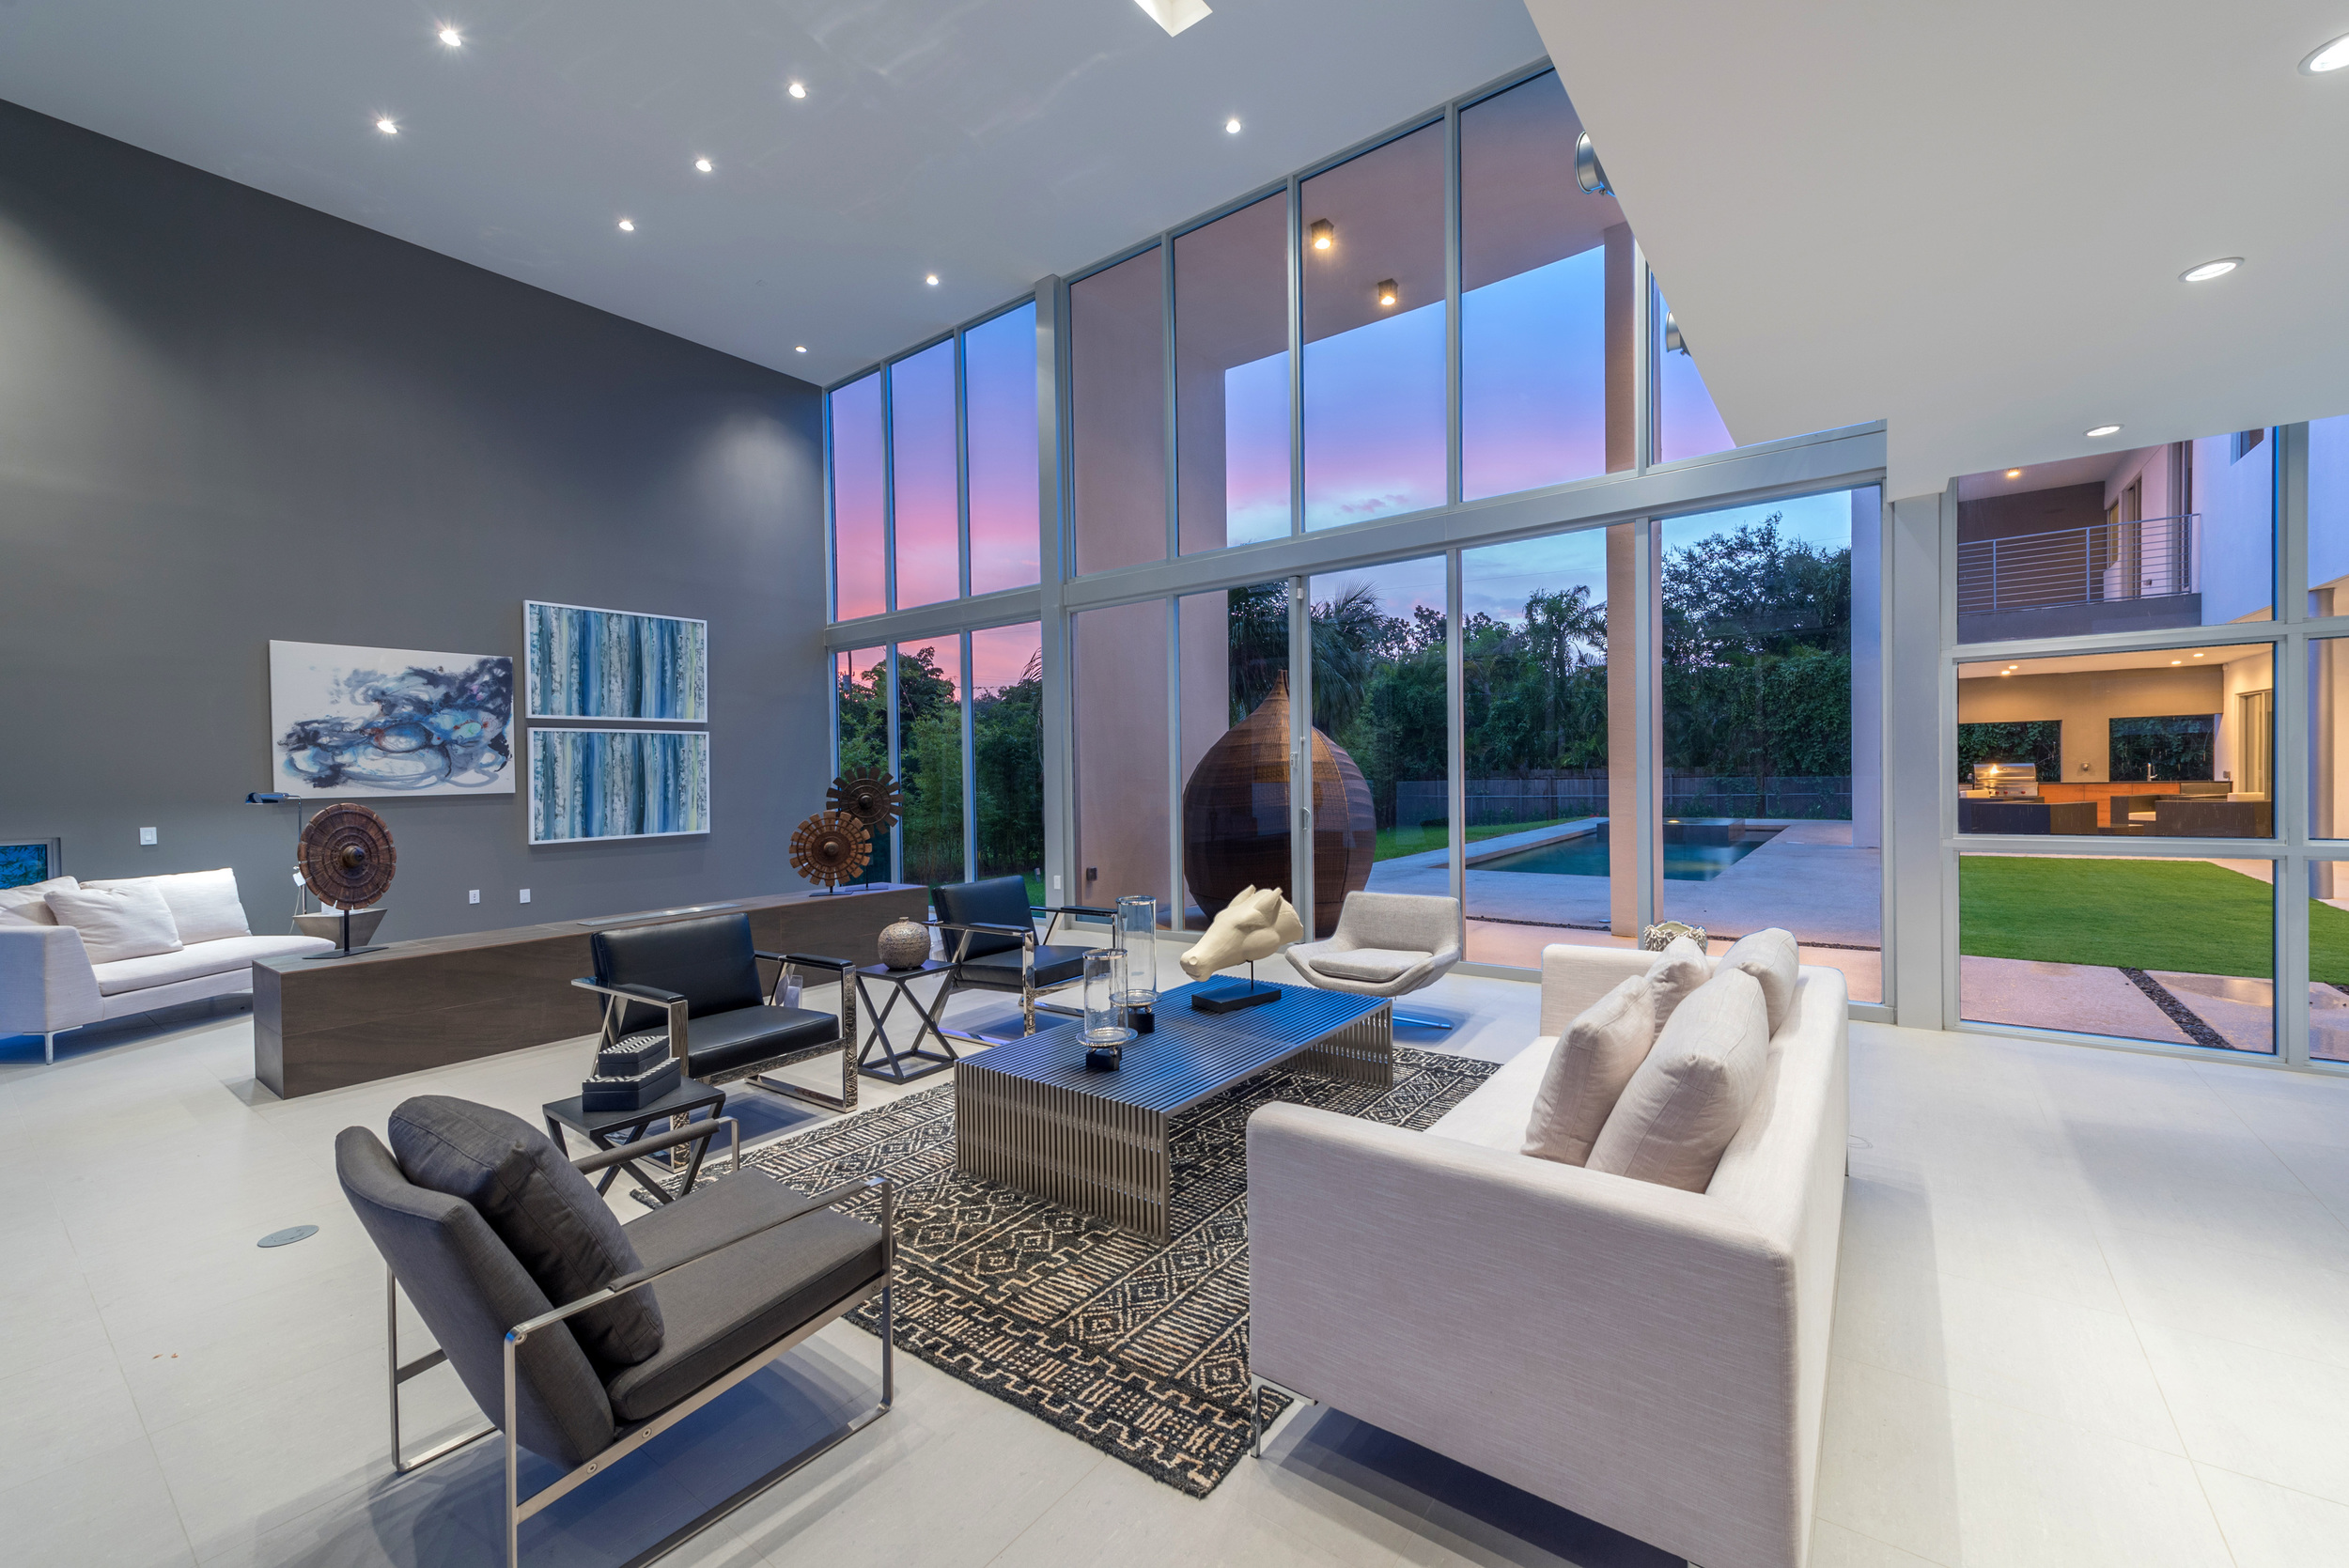 The Setting Homes Plum House Miami Florida Interior Living Room Dusk TARIS Real Estate